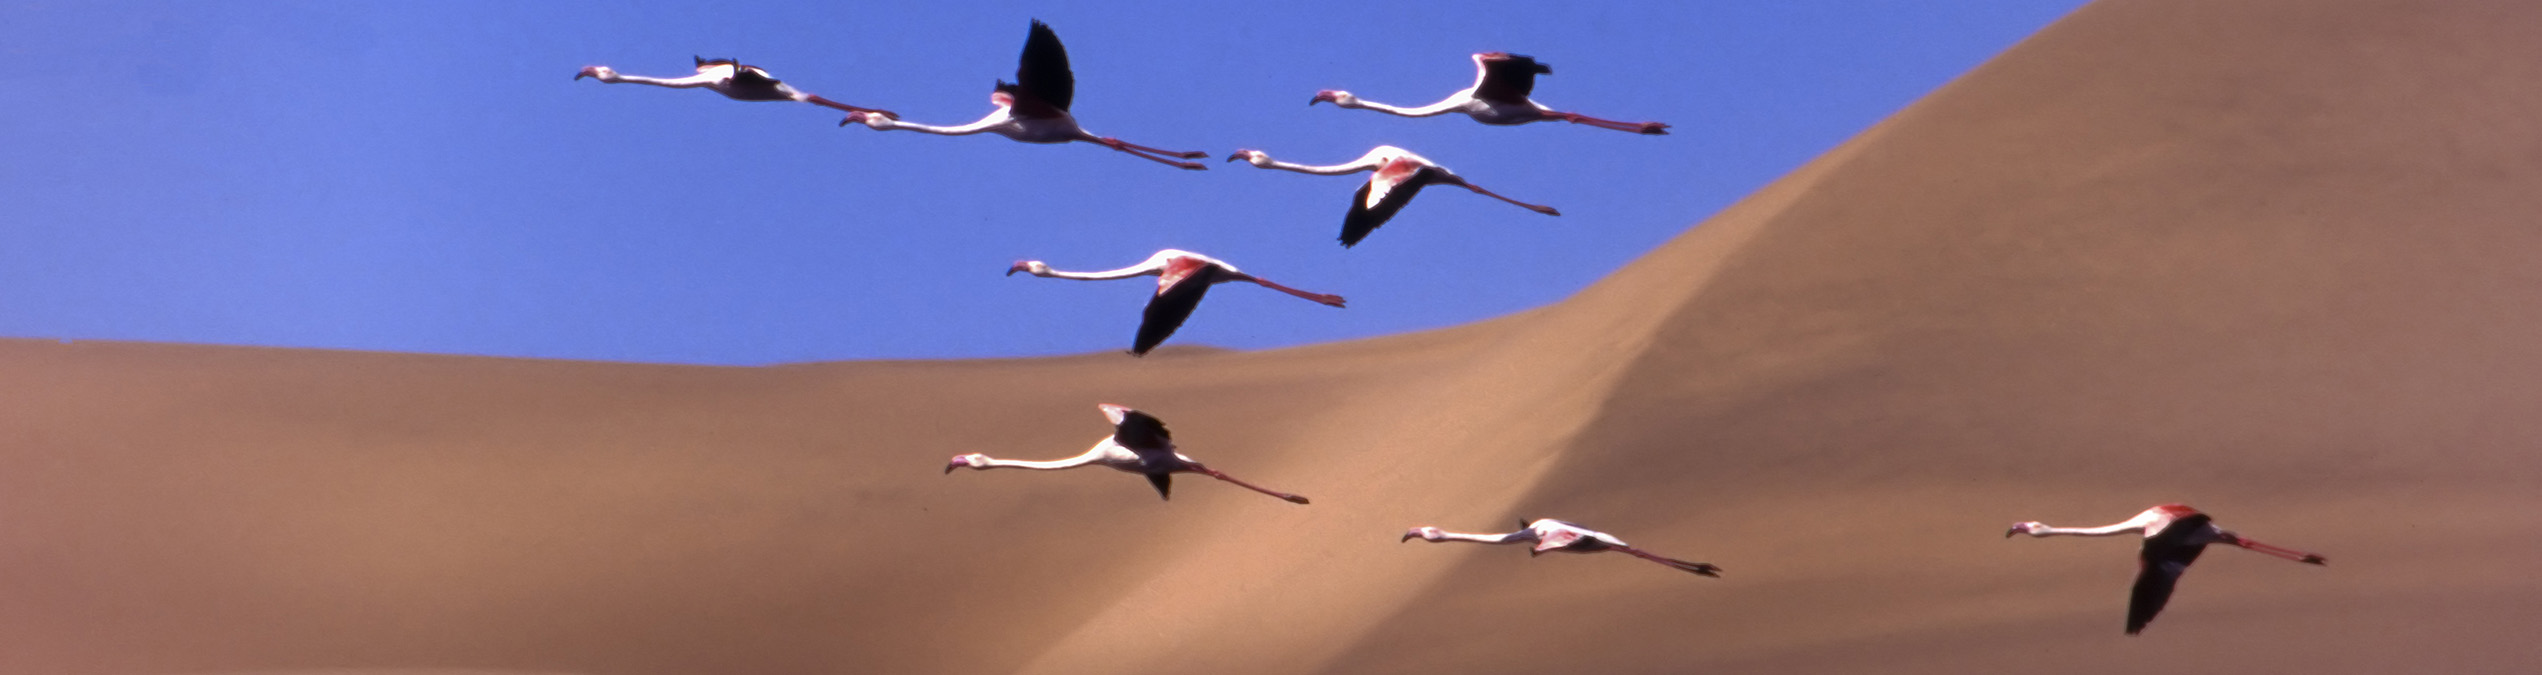 Safari Club - Namibia_Namib_Nakluft_National_Park_Flamingos_flying